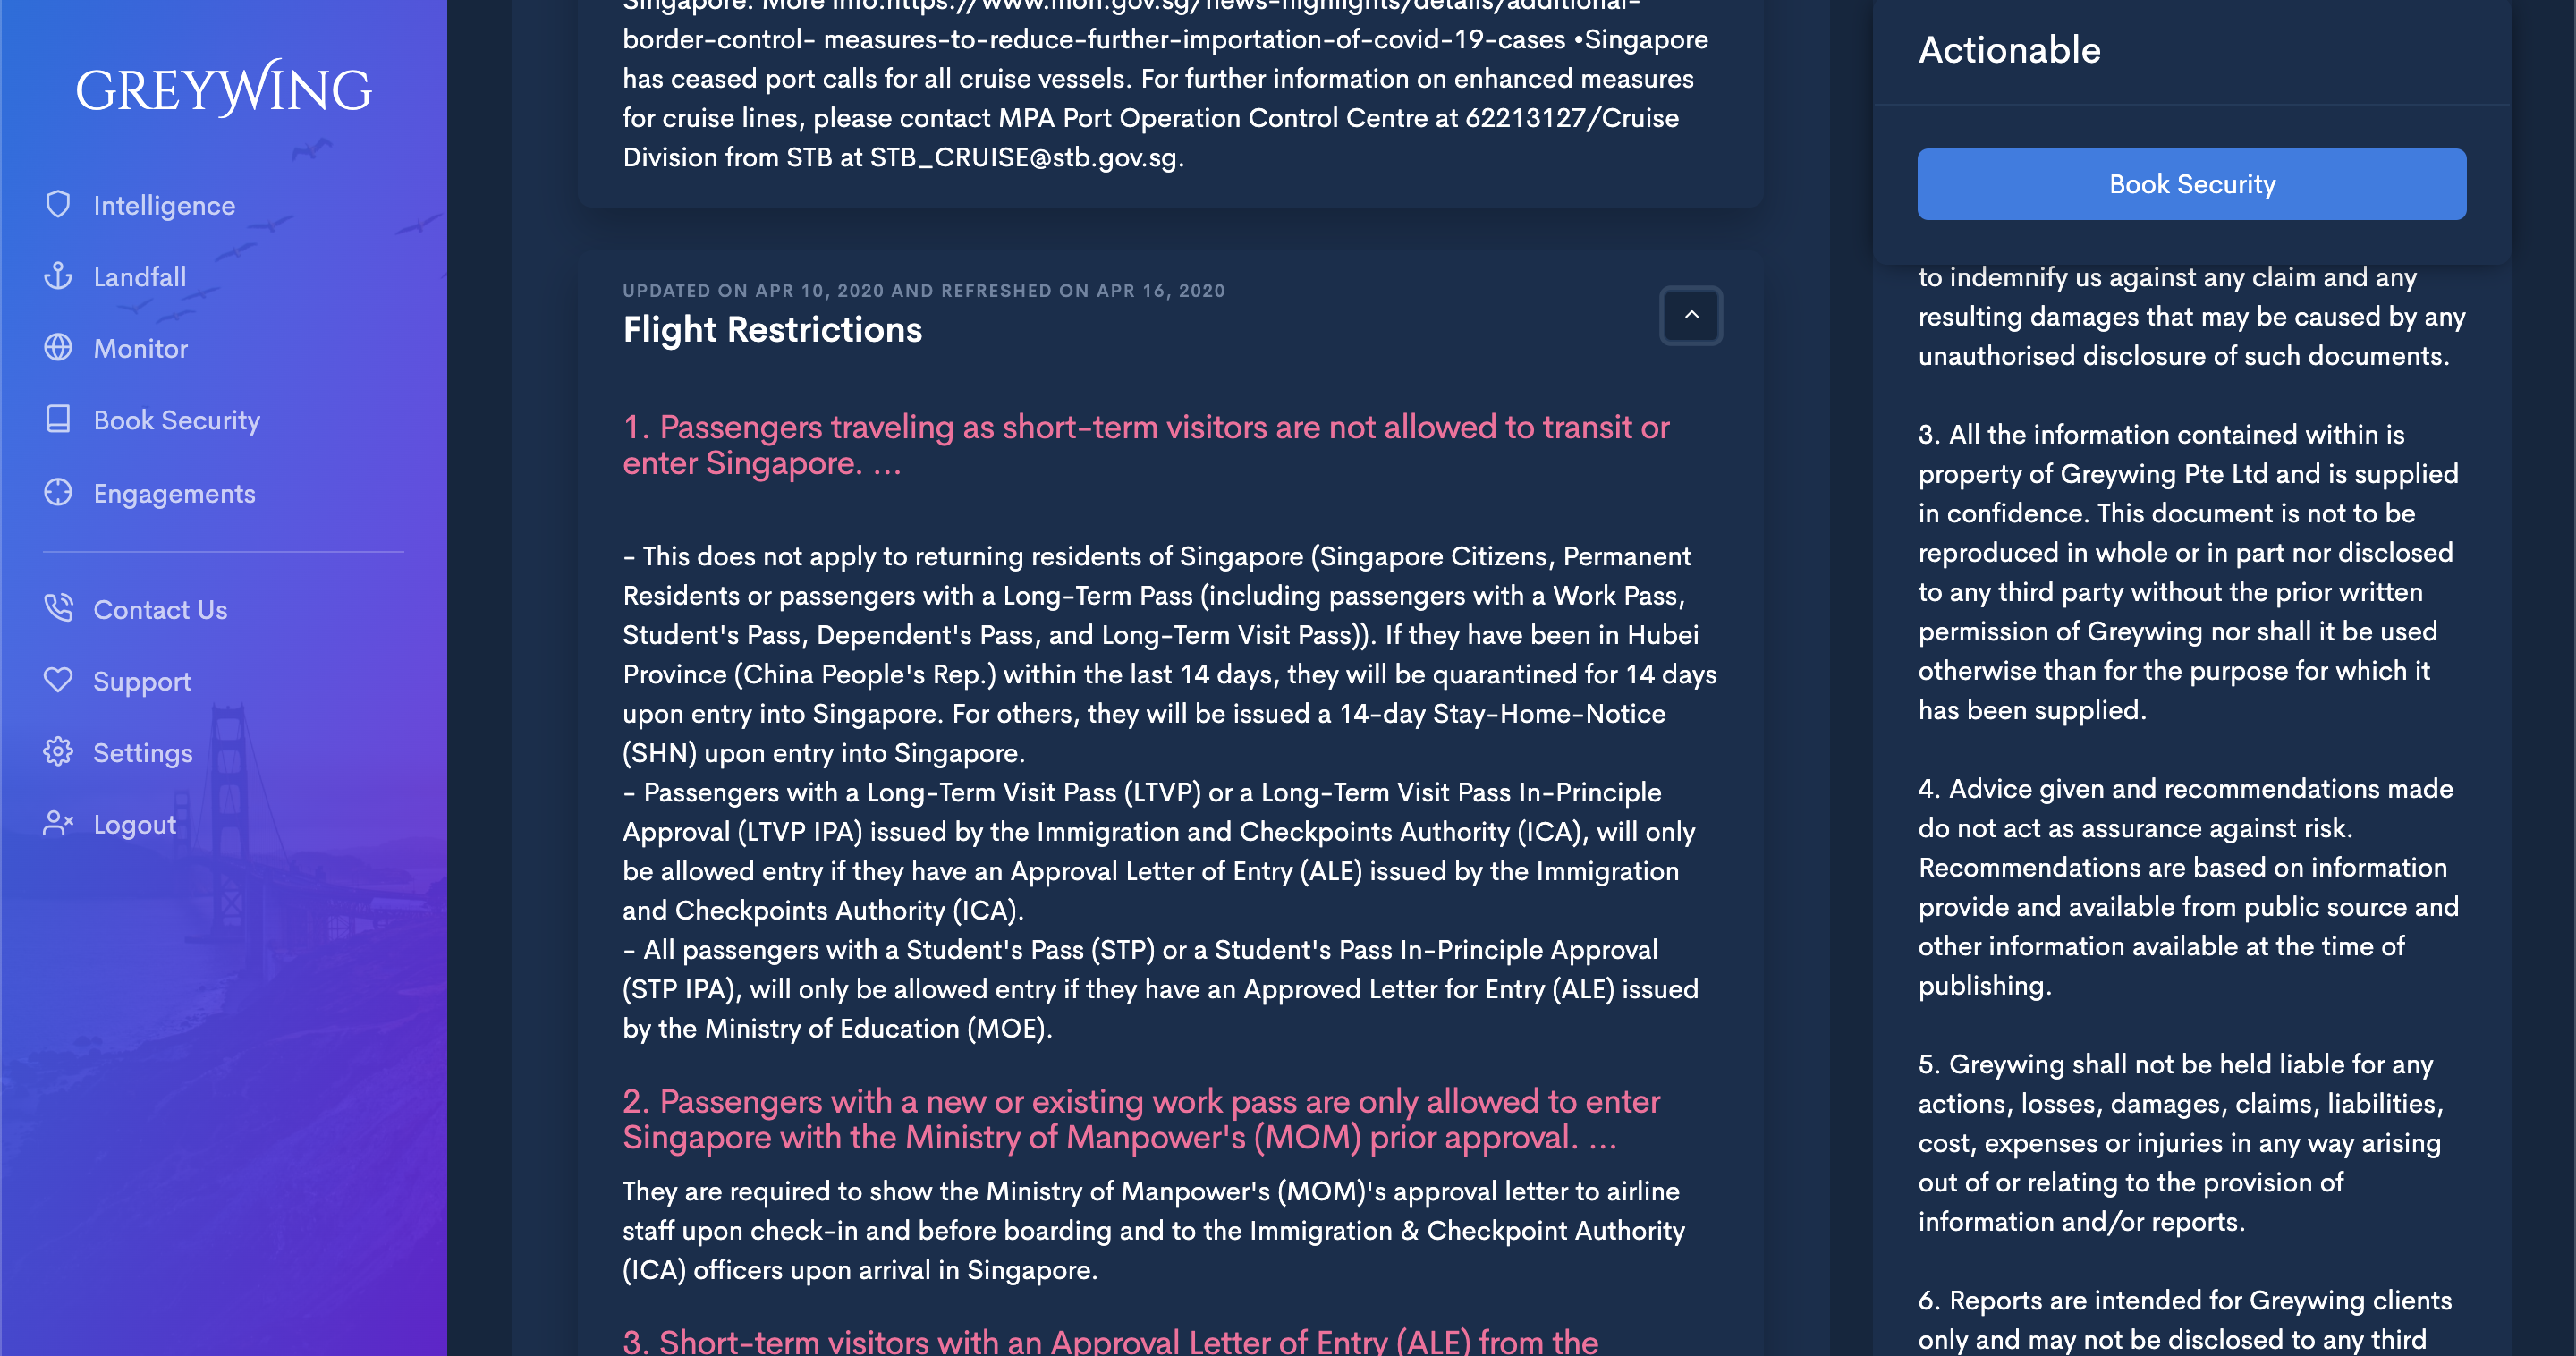 A Greywing report on flight restrictions